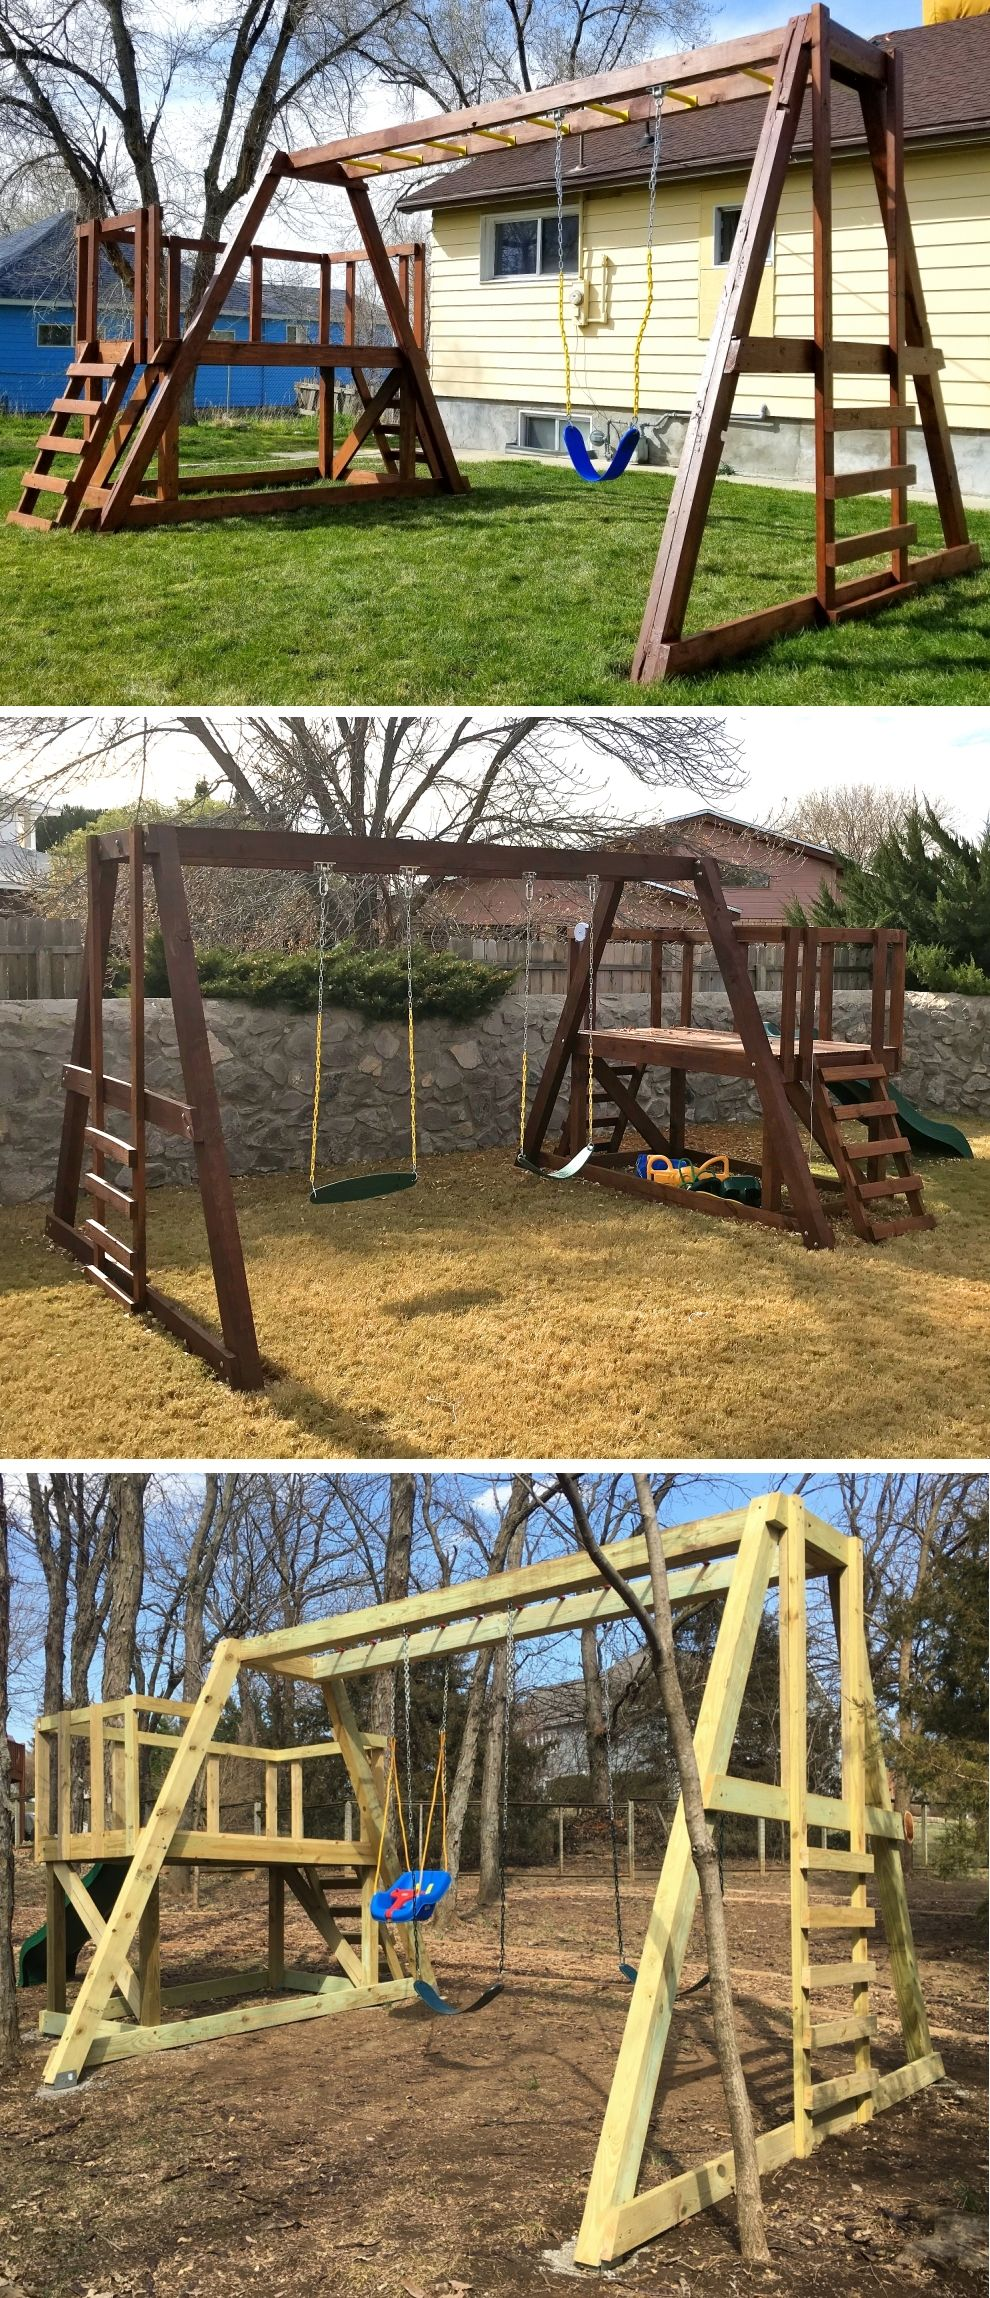 Paul S Swingset Swing Sets For Kids Swing Set Diy Swing Set Plans